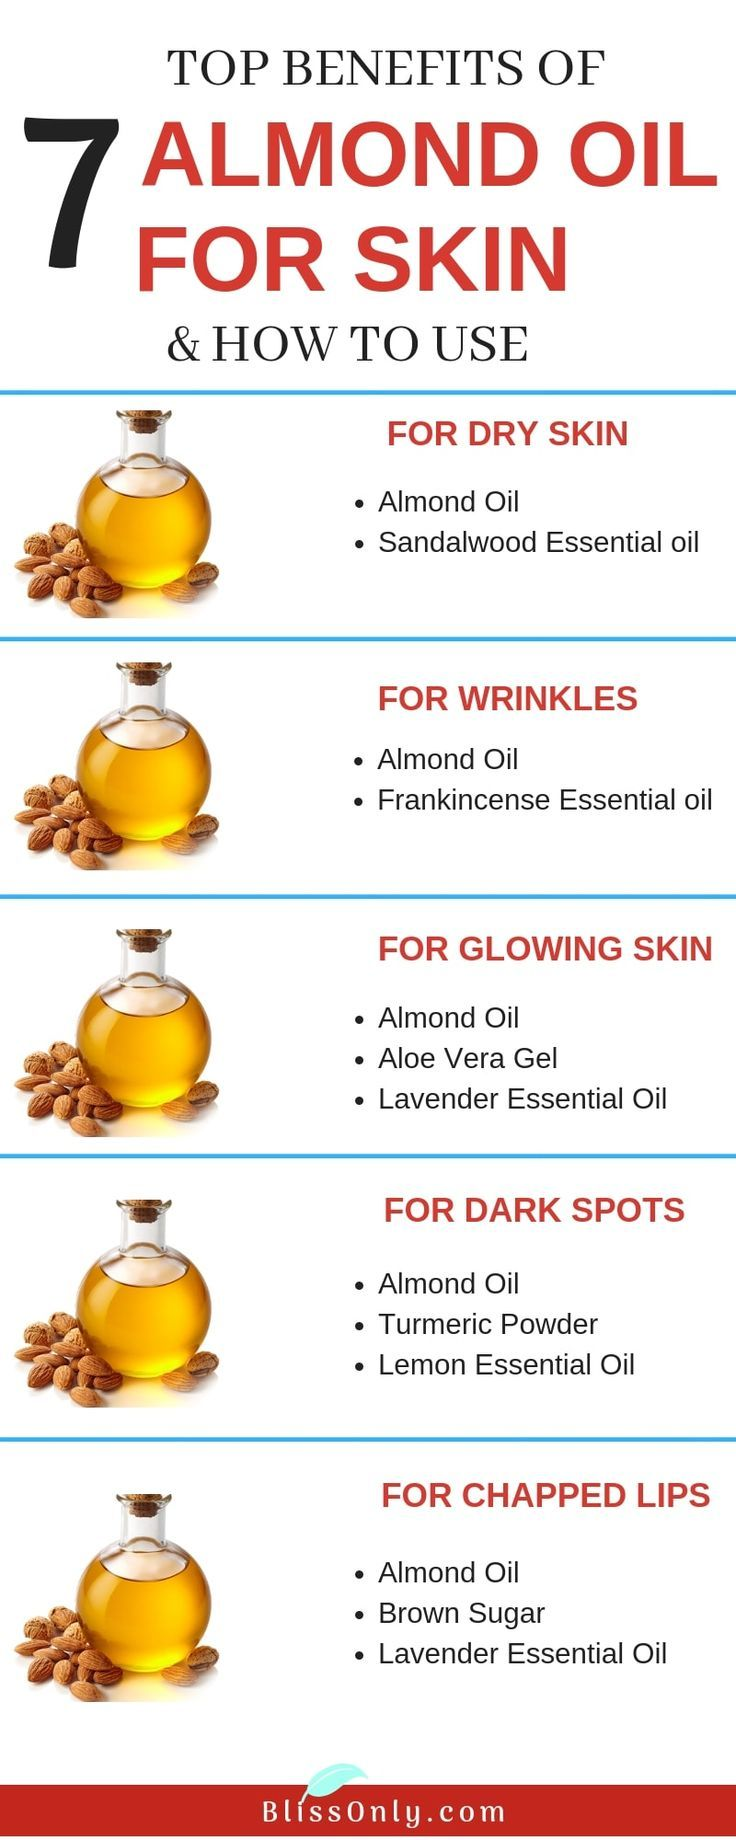 9 top benefits of almond oil for skin and how to use. It is loaded